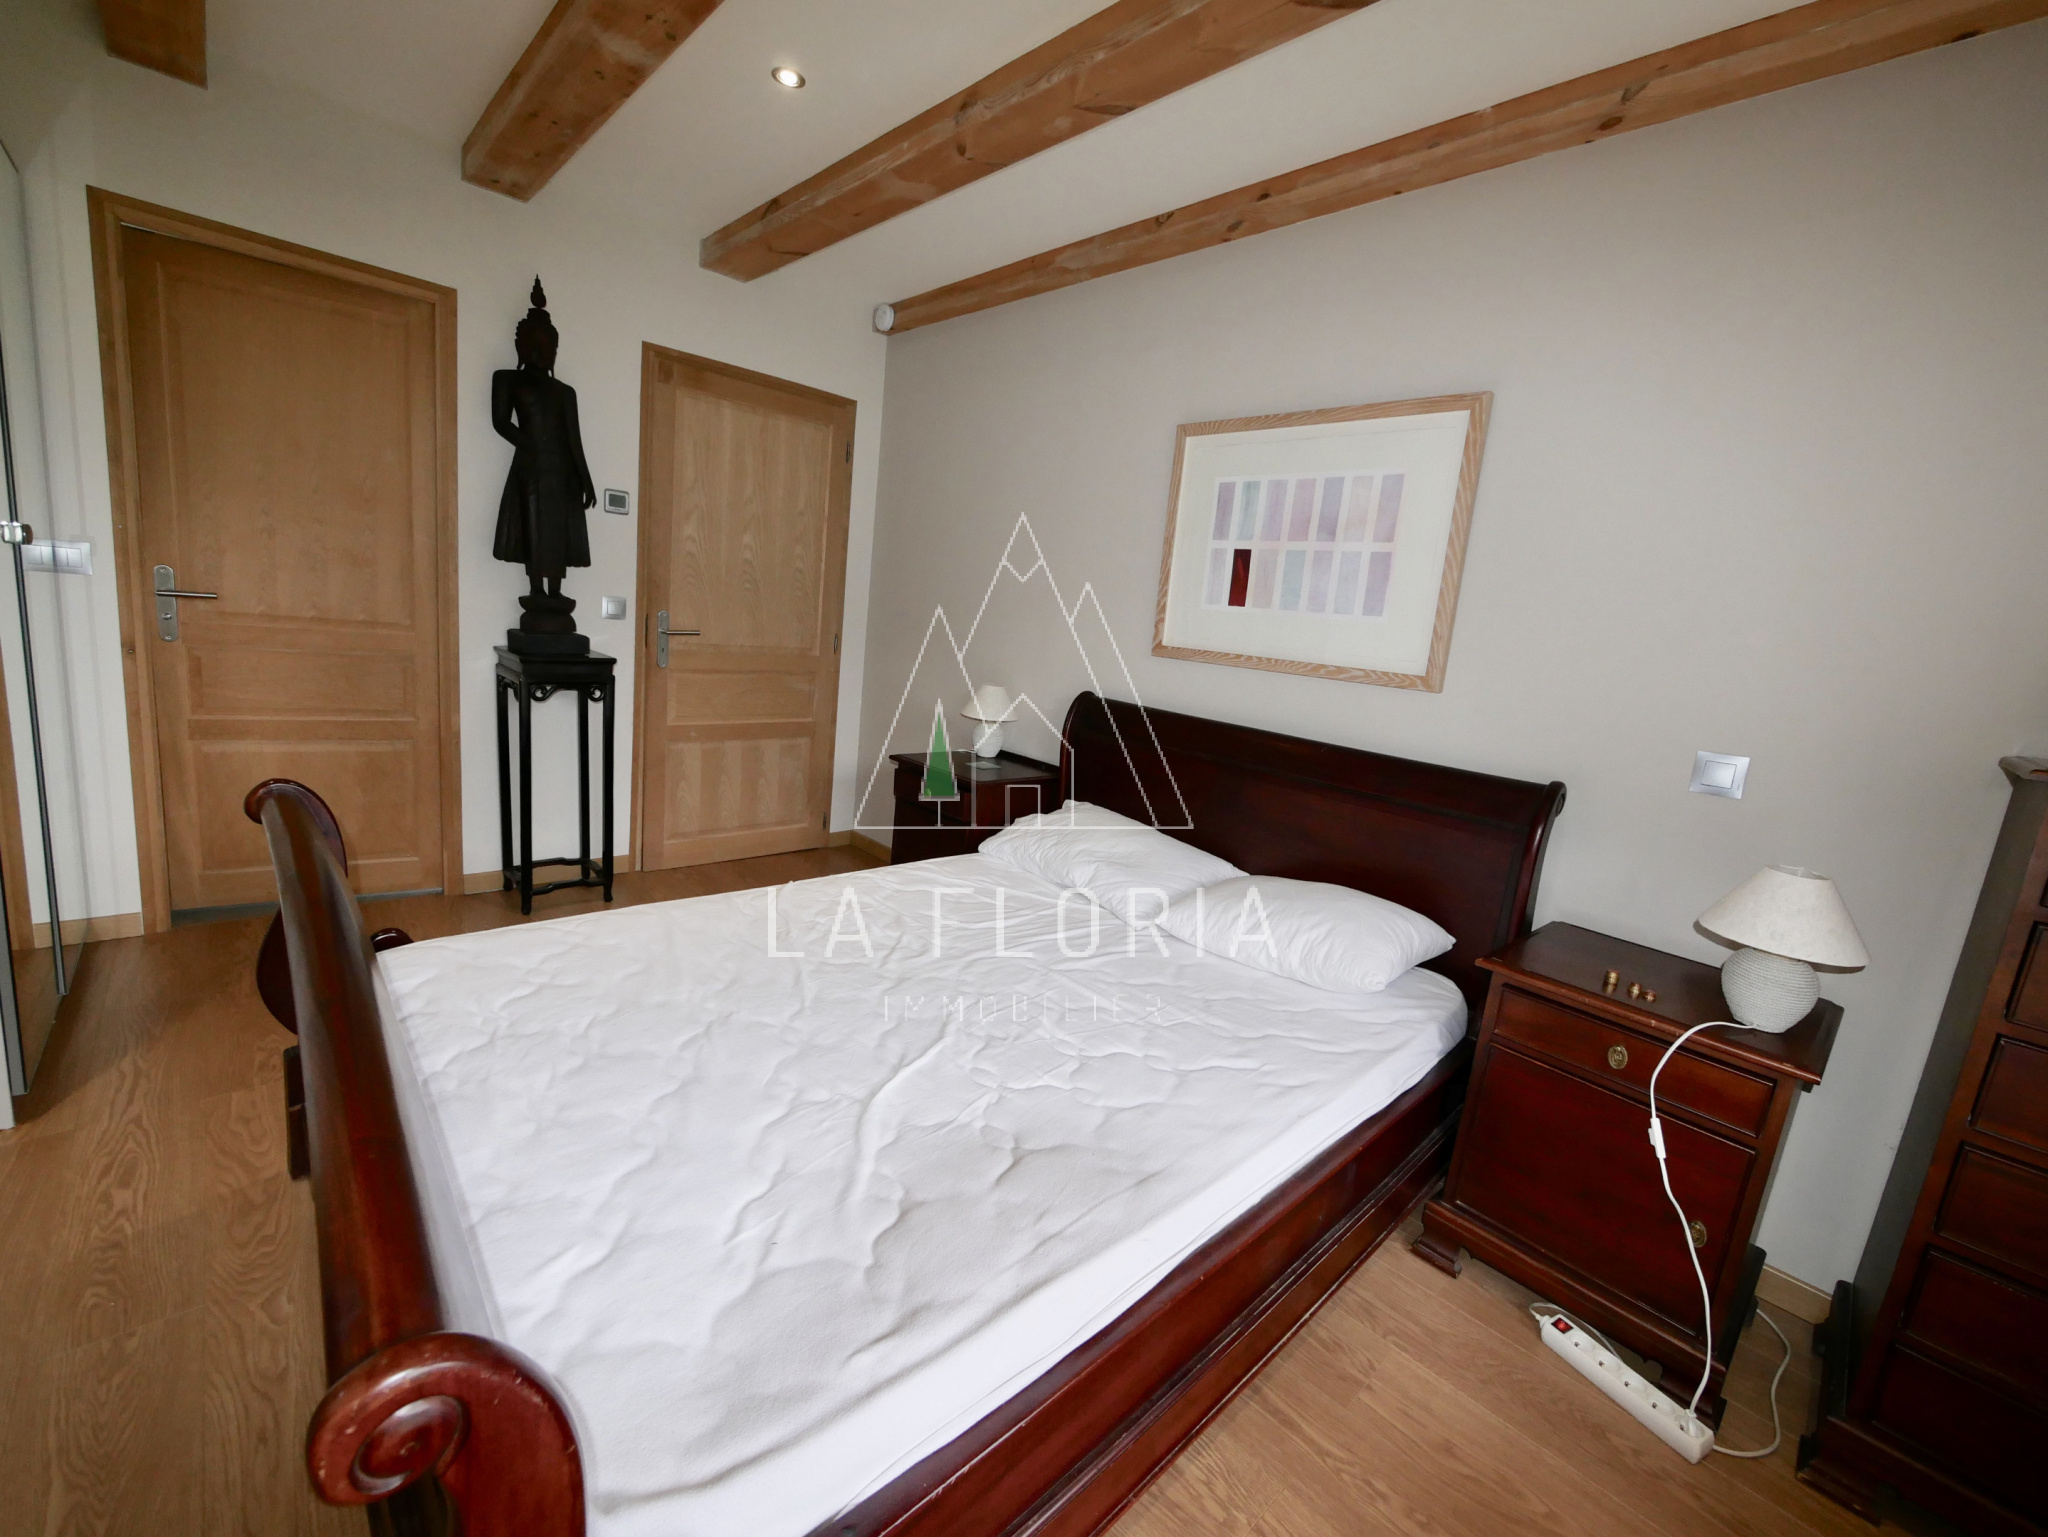 NEWLY CONSTRUCTED 5 BEDROOM CHALET LES HOUCHES CENTRE